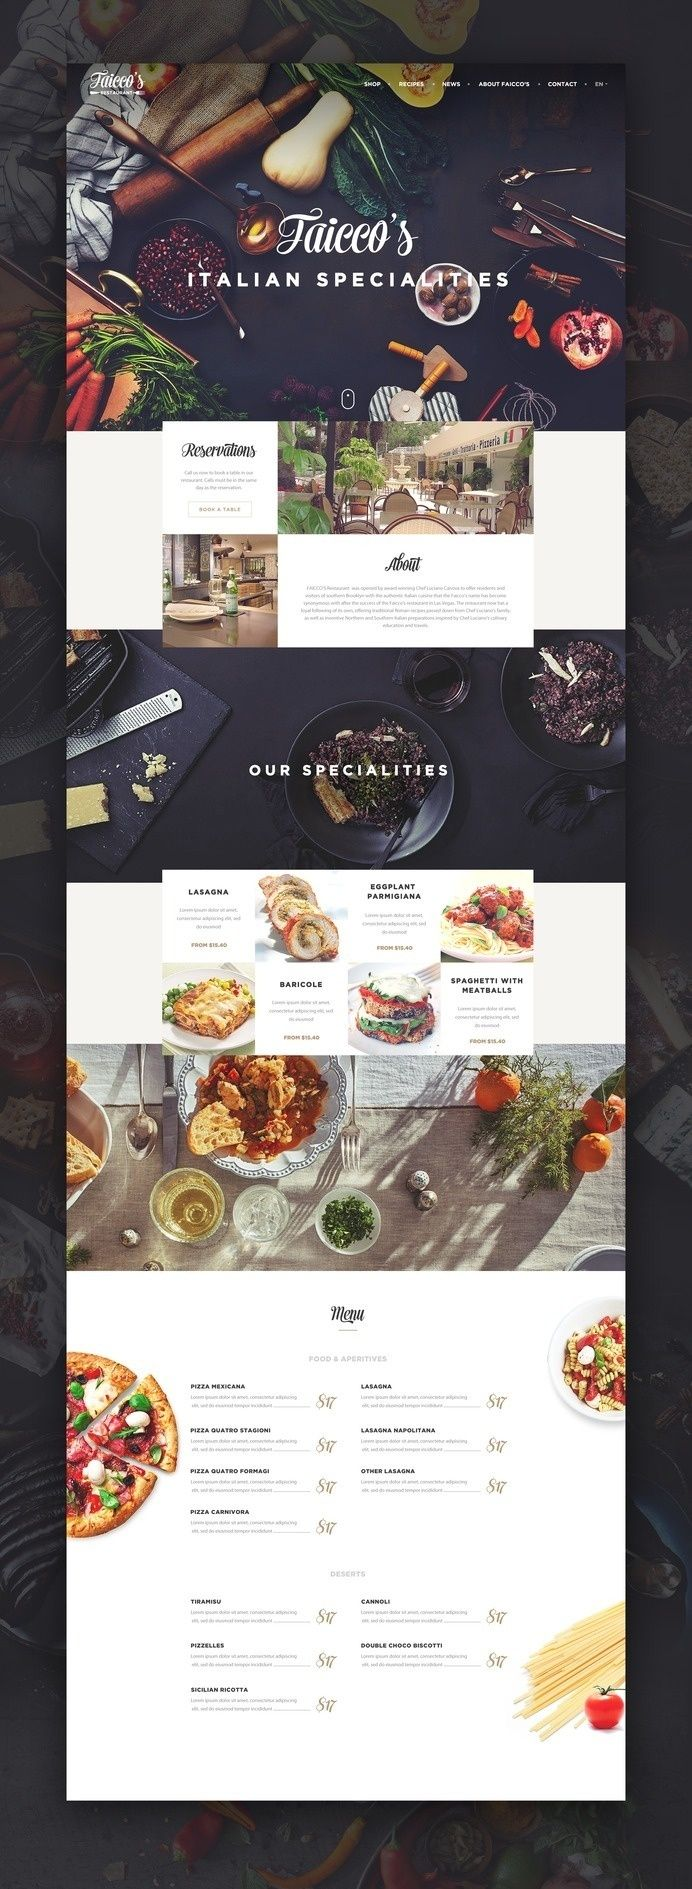 Layout in Web